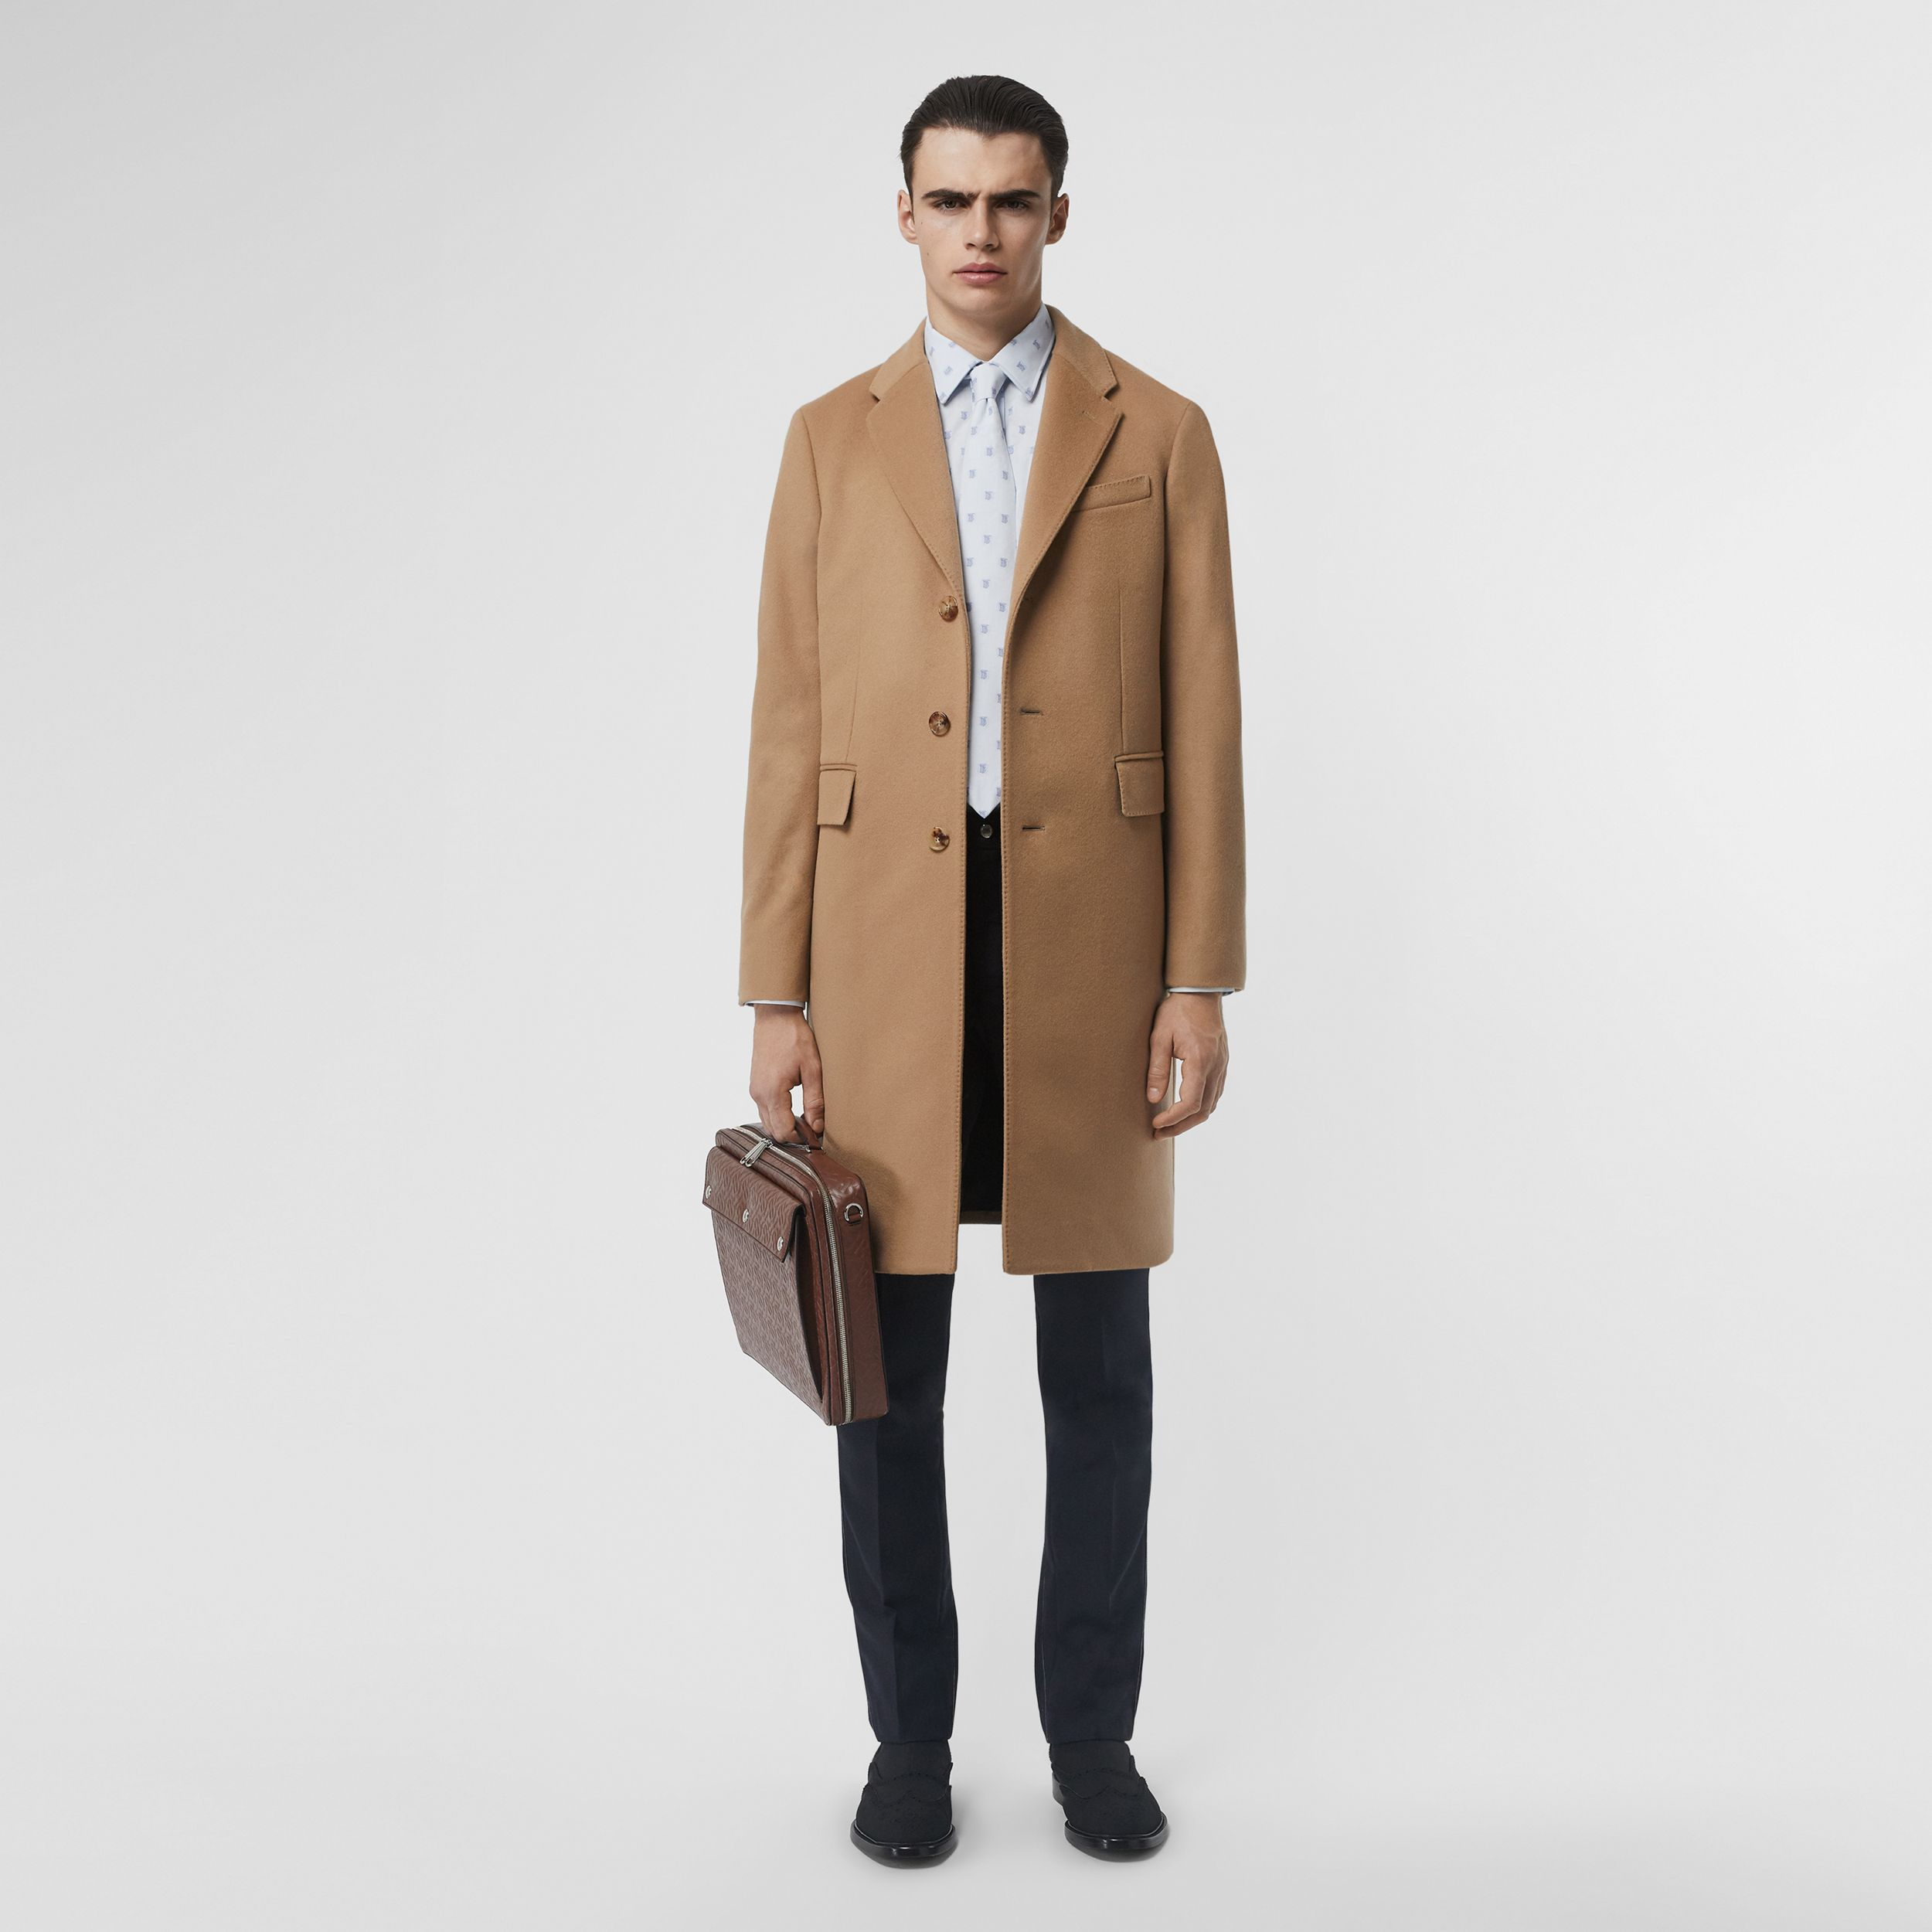 Wool Cashmere Tailored Coat in Camel - Men | Burberry - 1